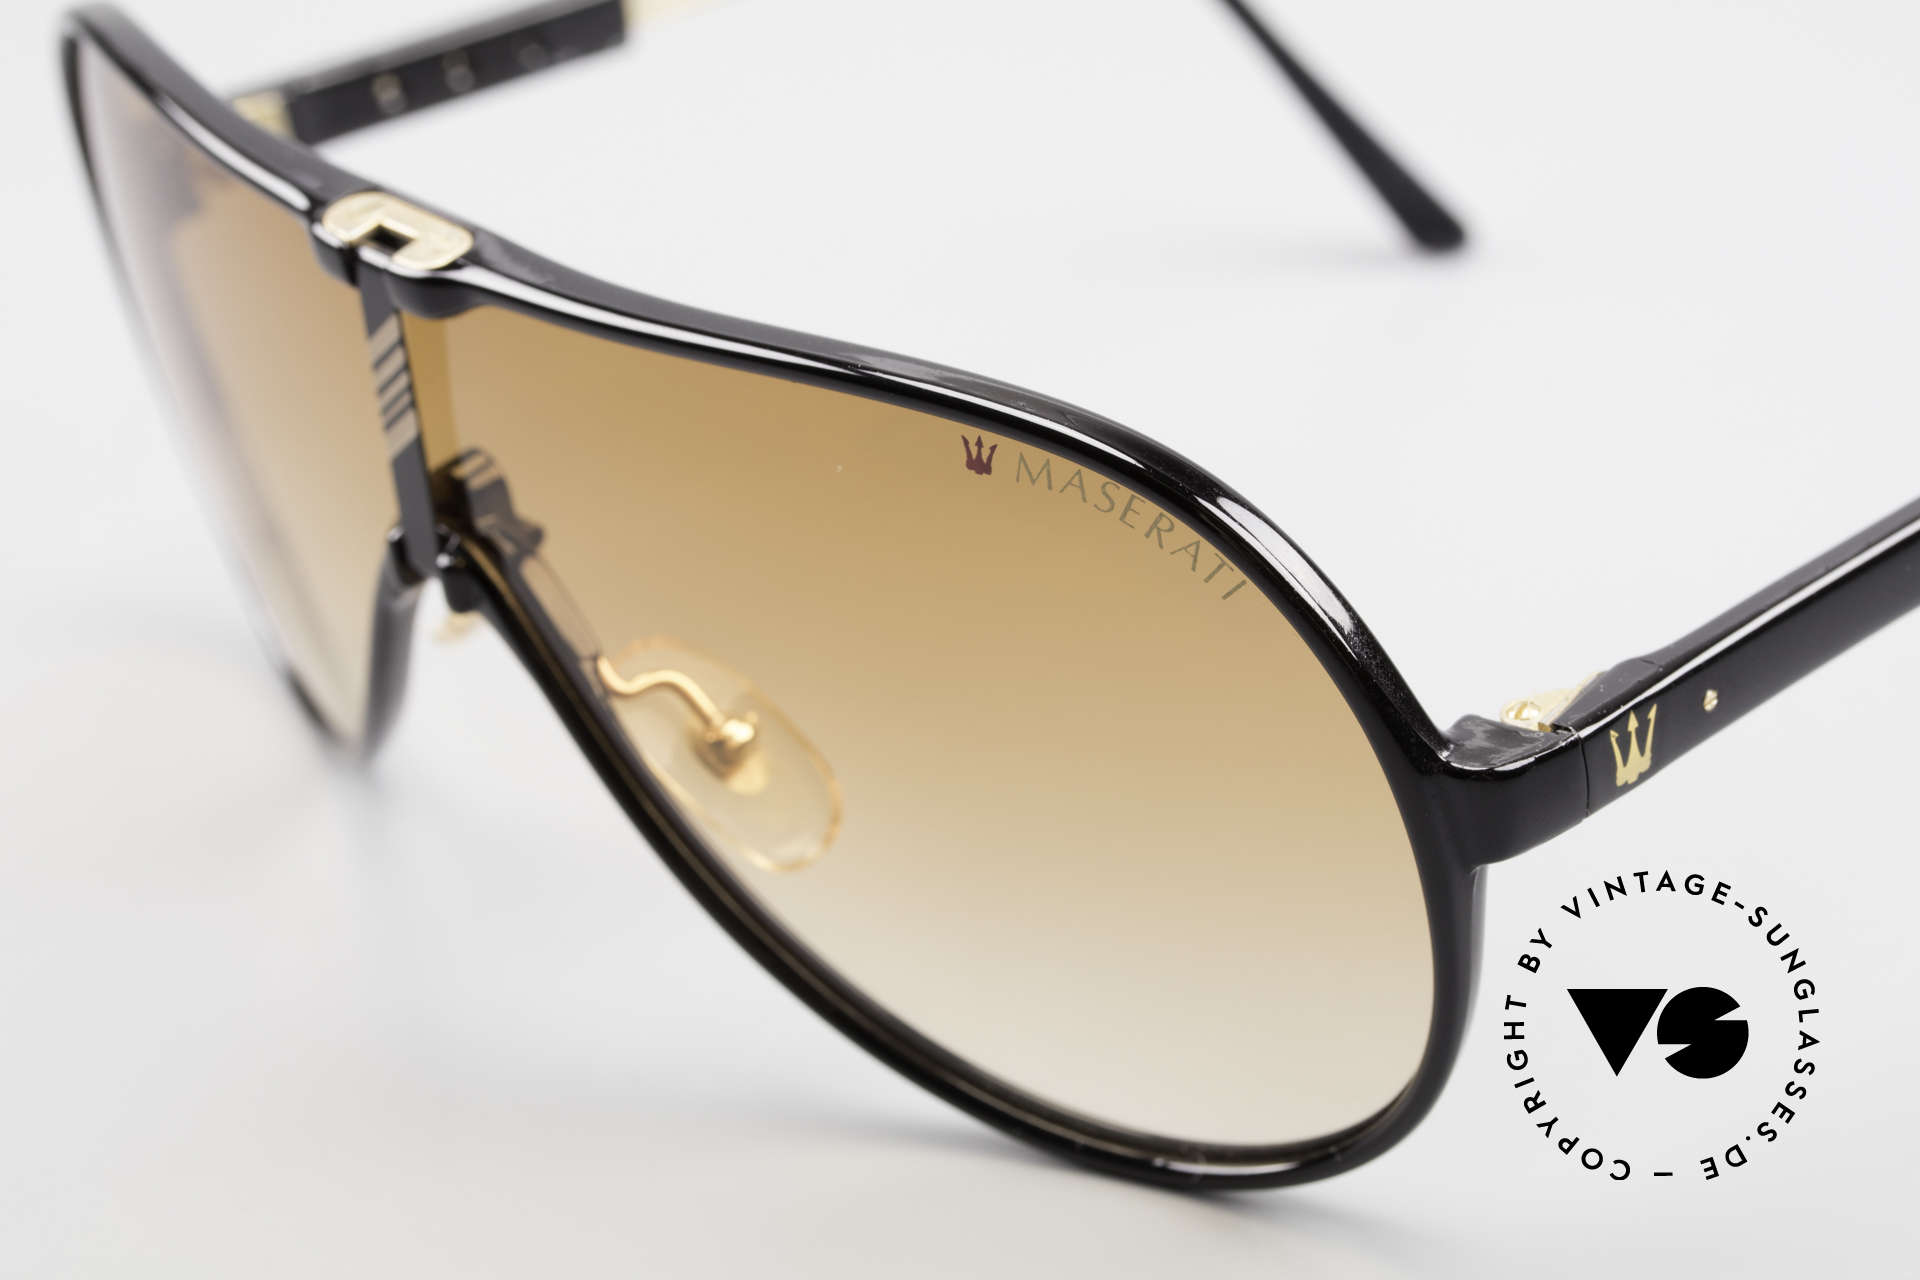 Maserati 6119 3 Lenses Sports Sunglasses, temple length is adjustable (& still with orig. packing), Made for Men